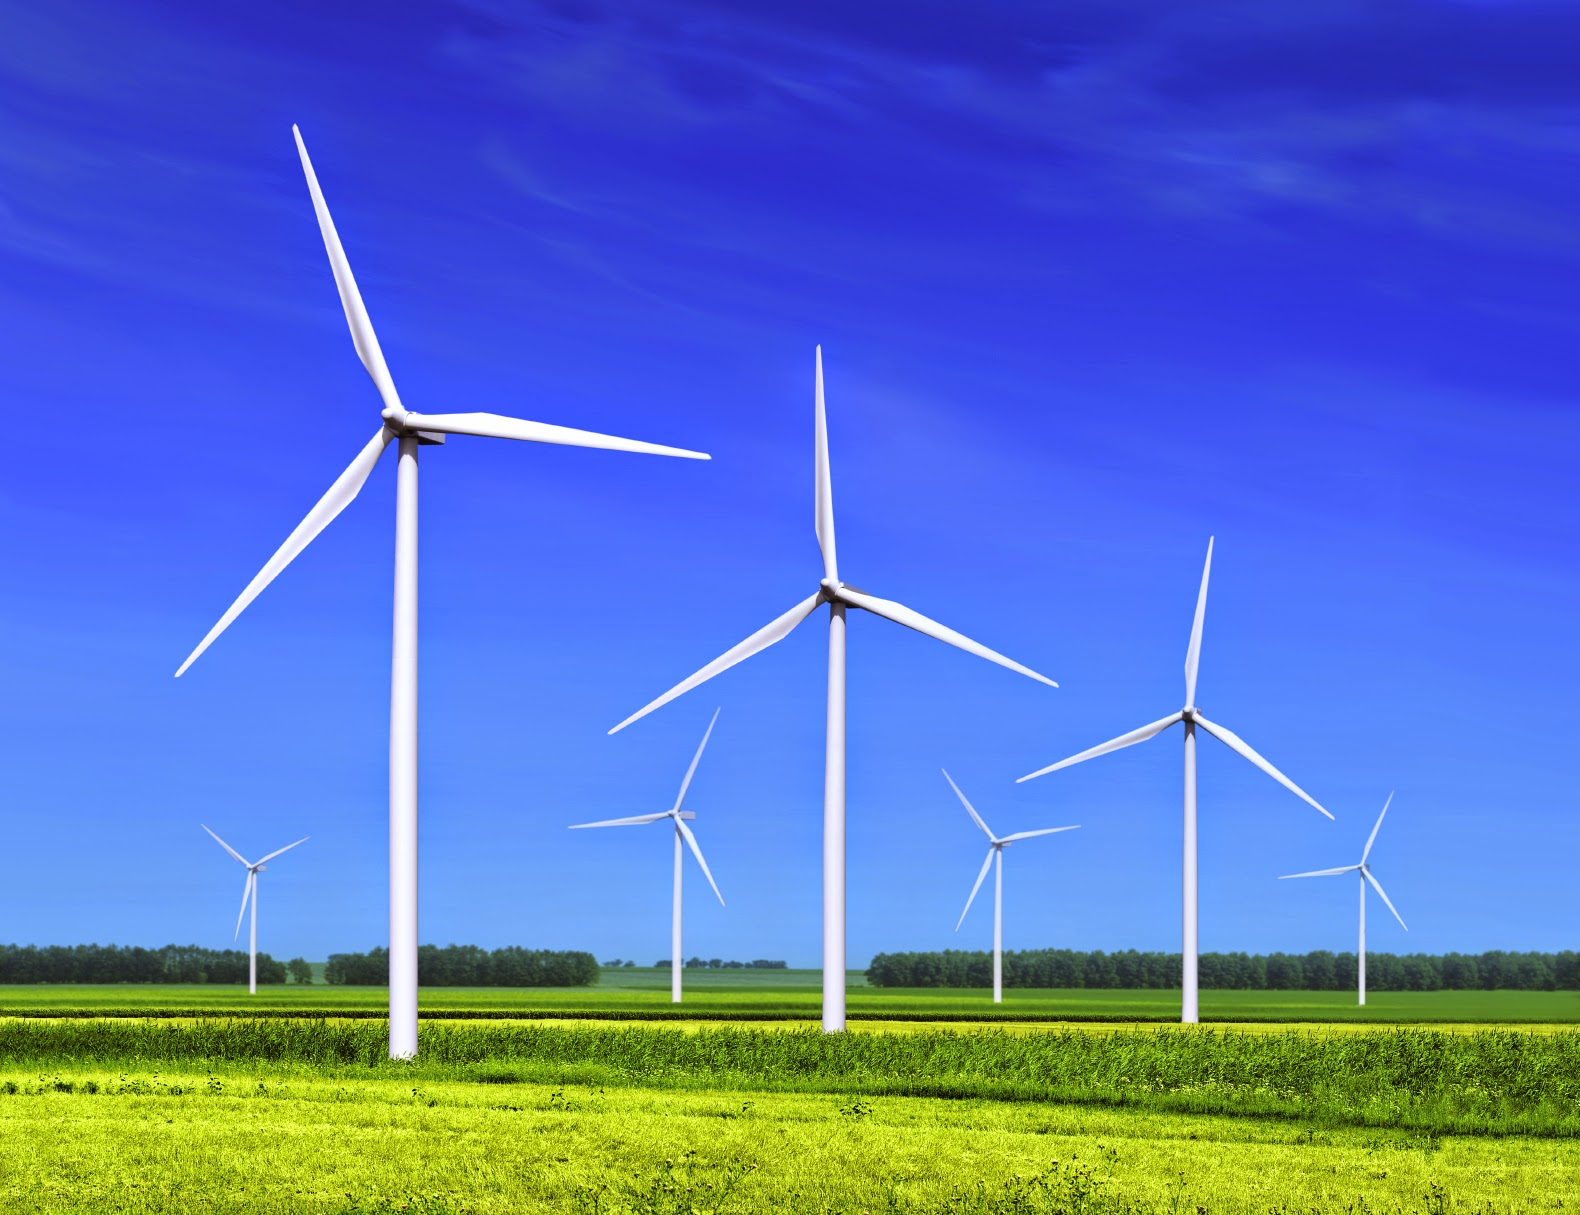 waste-away group : wind as a renewable energy source